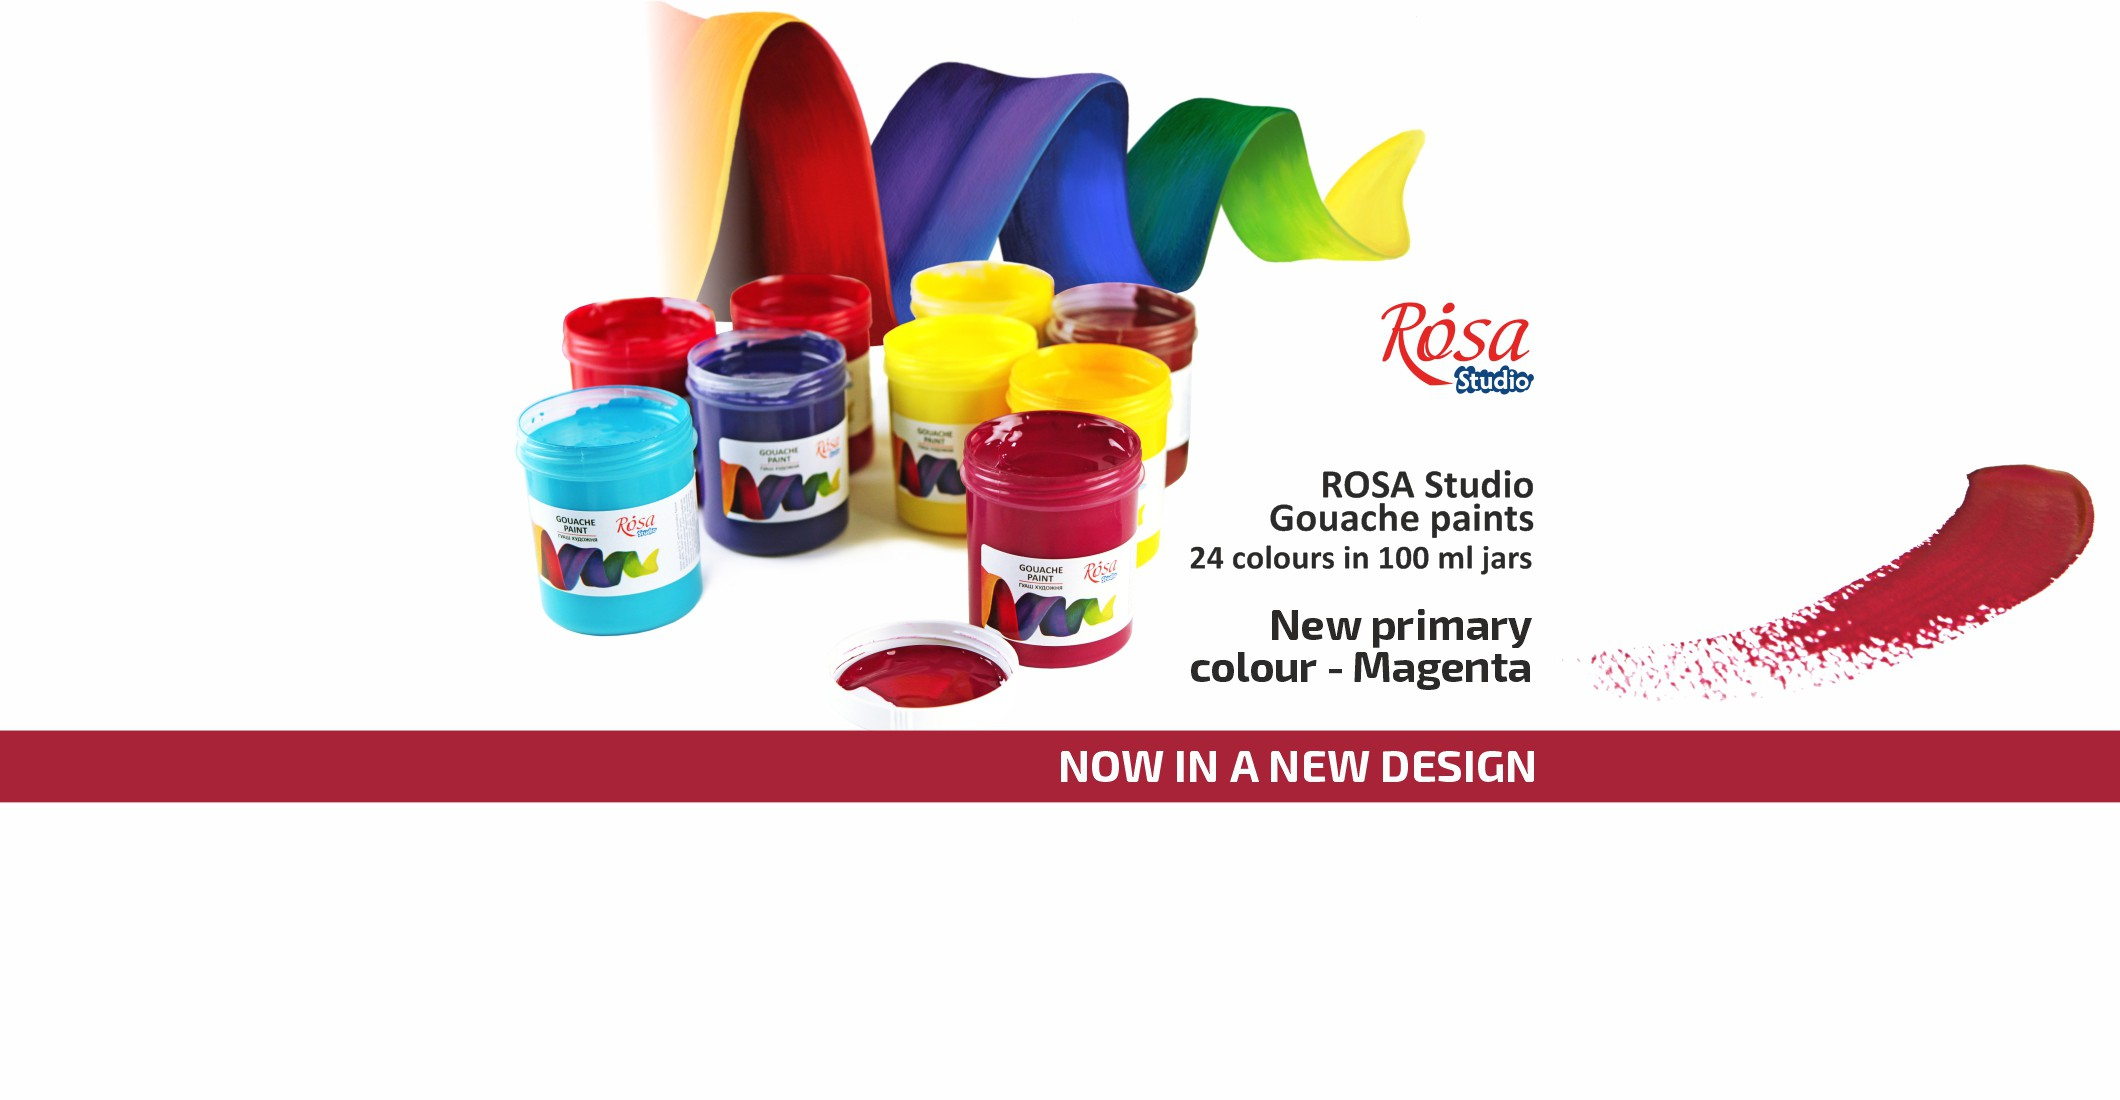 ROSA Studio Gouache paints in a new design